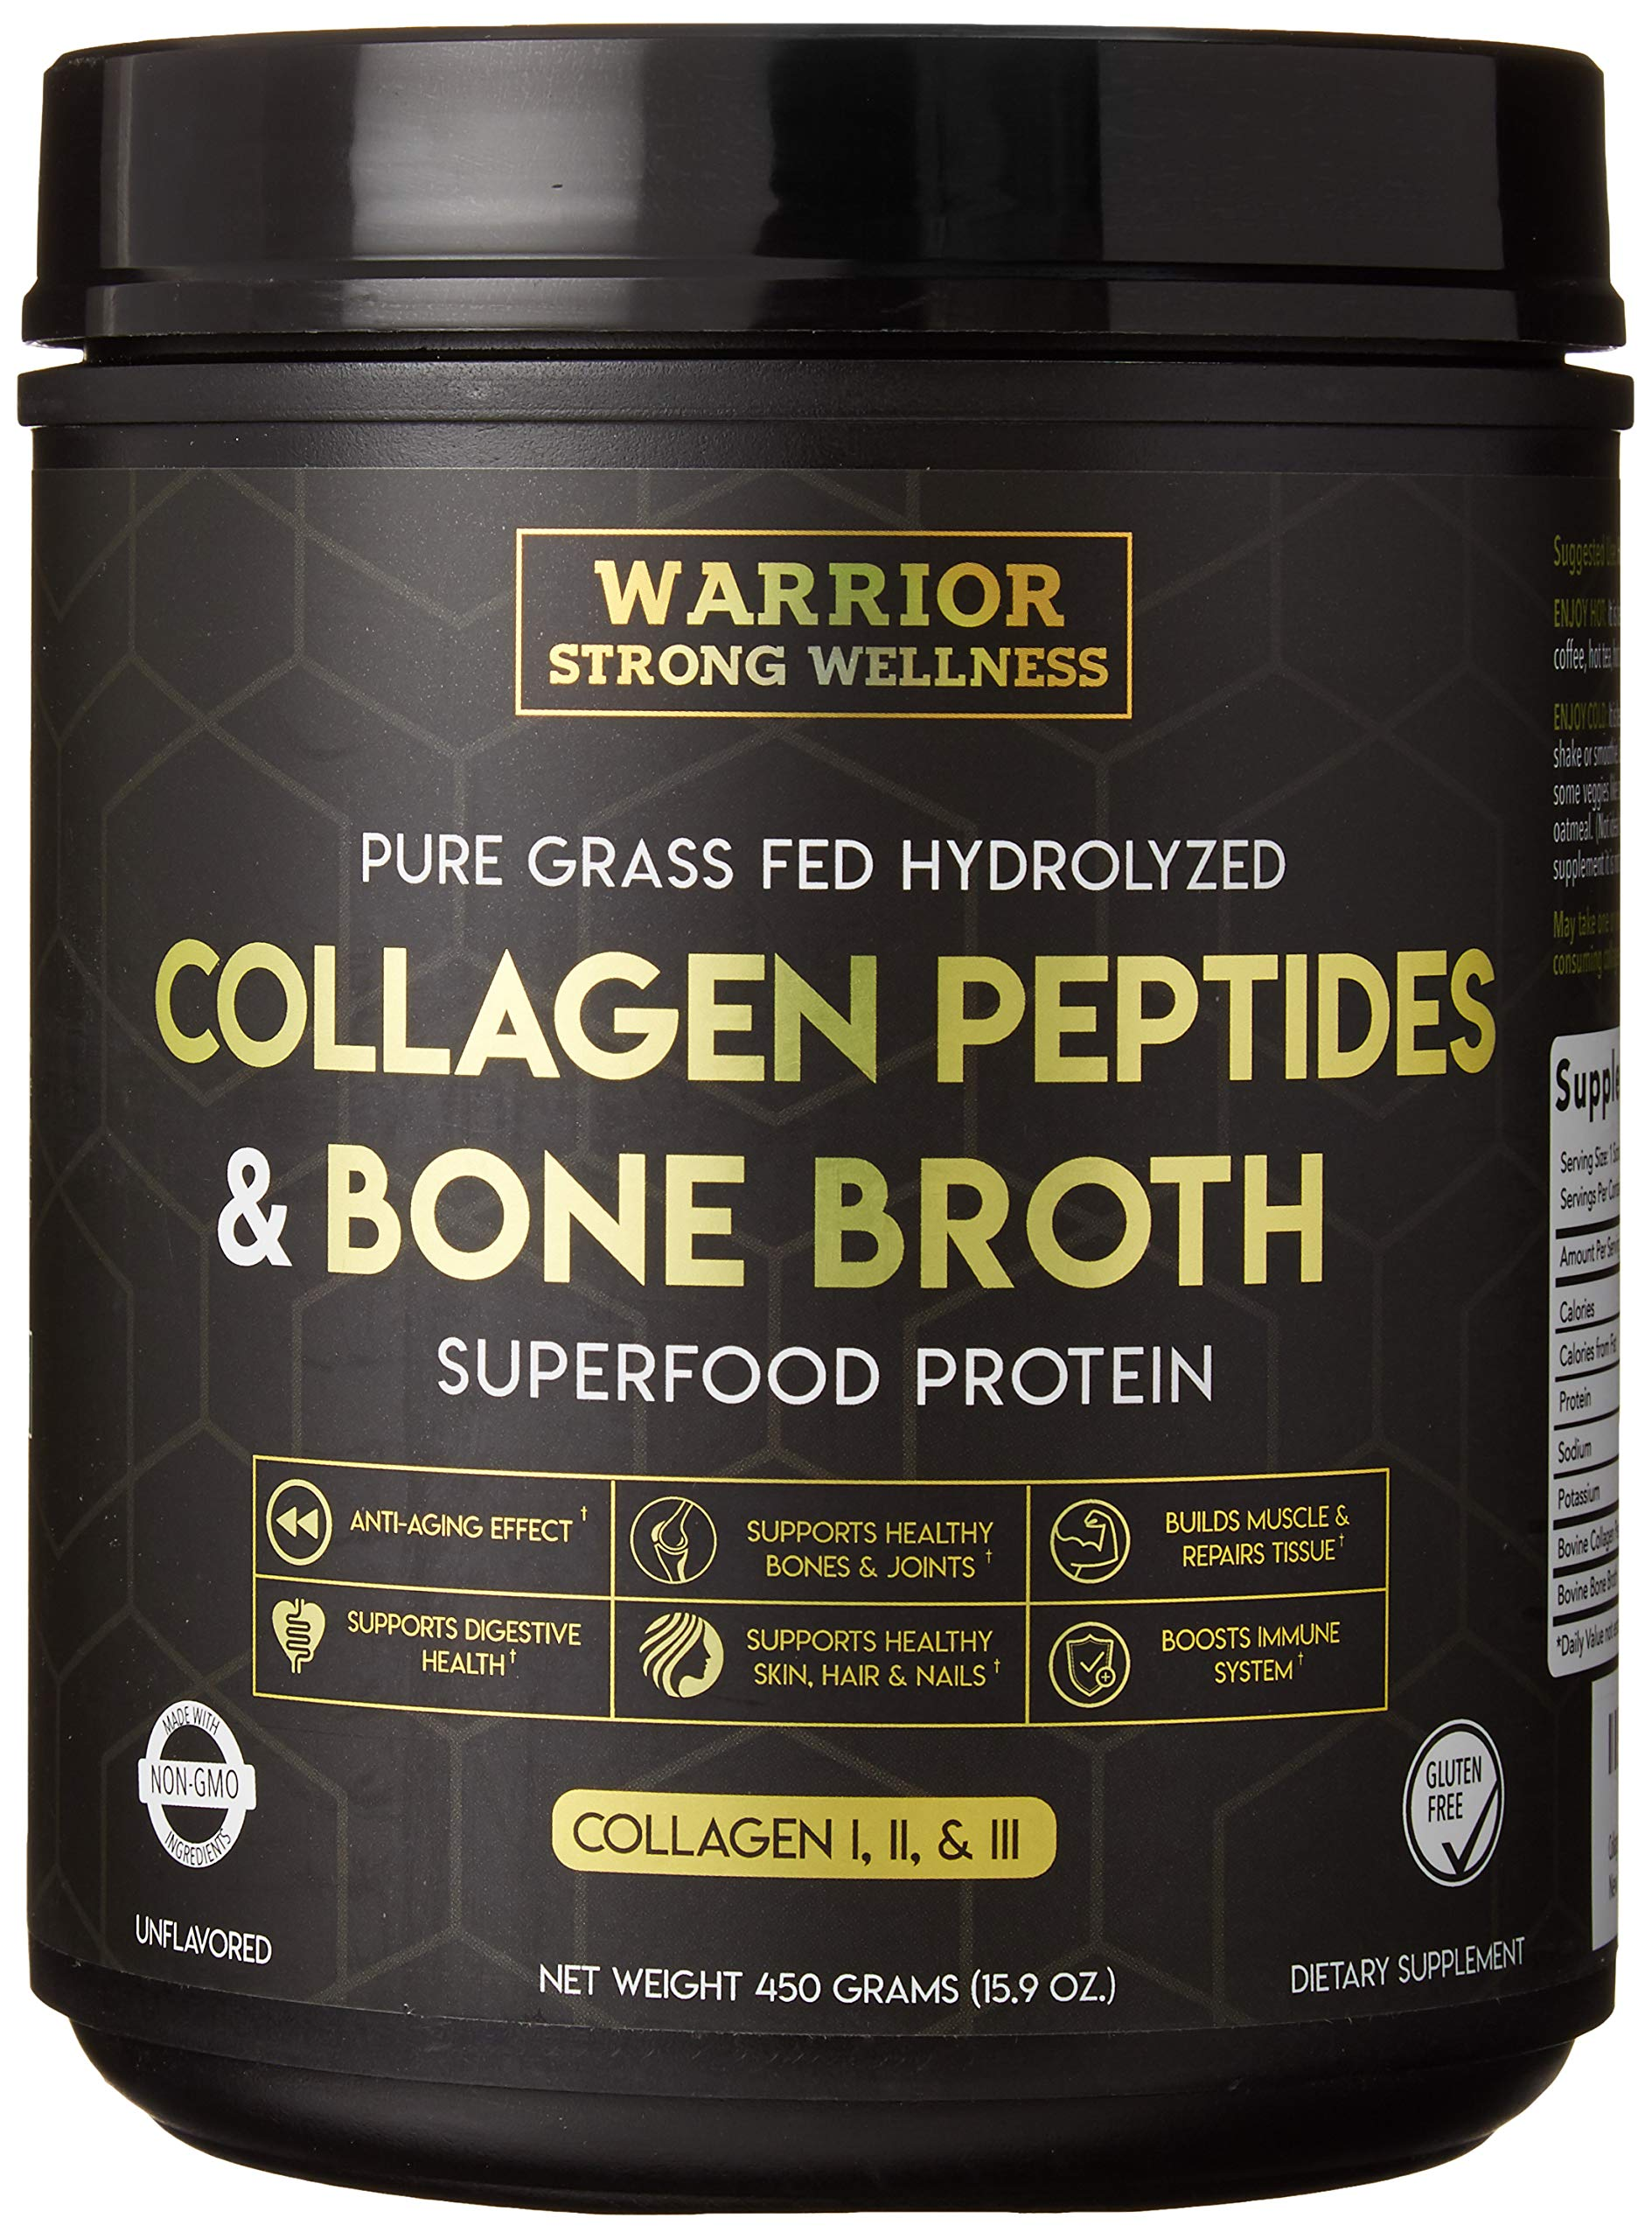 Collagen Peptides & Bone Broth by Warrior Strong Wellness: Pure Grass-Fed Hydrolyzed Collagen Powder Boost for Healthy Skin, Nails, Hair, Joints, Muscles & Digestion, Keto Friendly, Unflavored by Warrior Strong Wellness